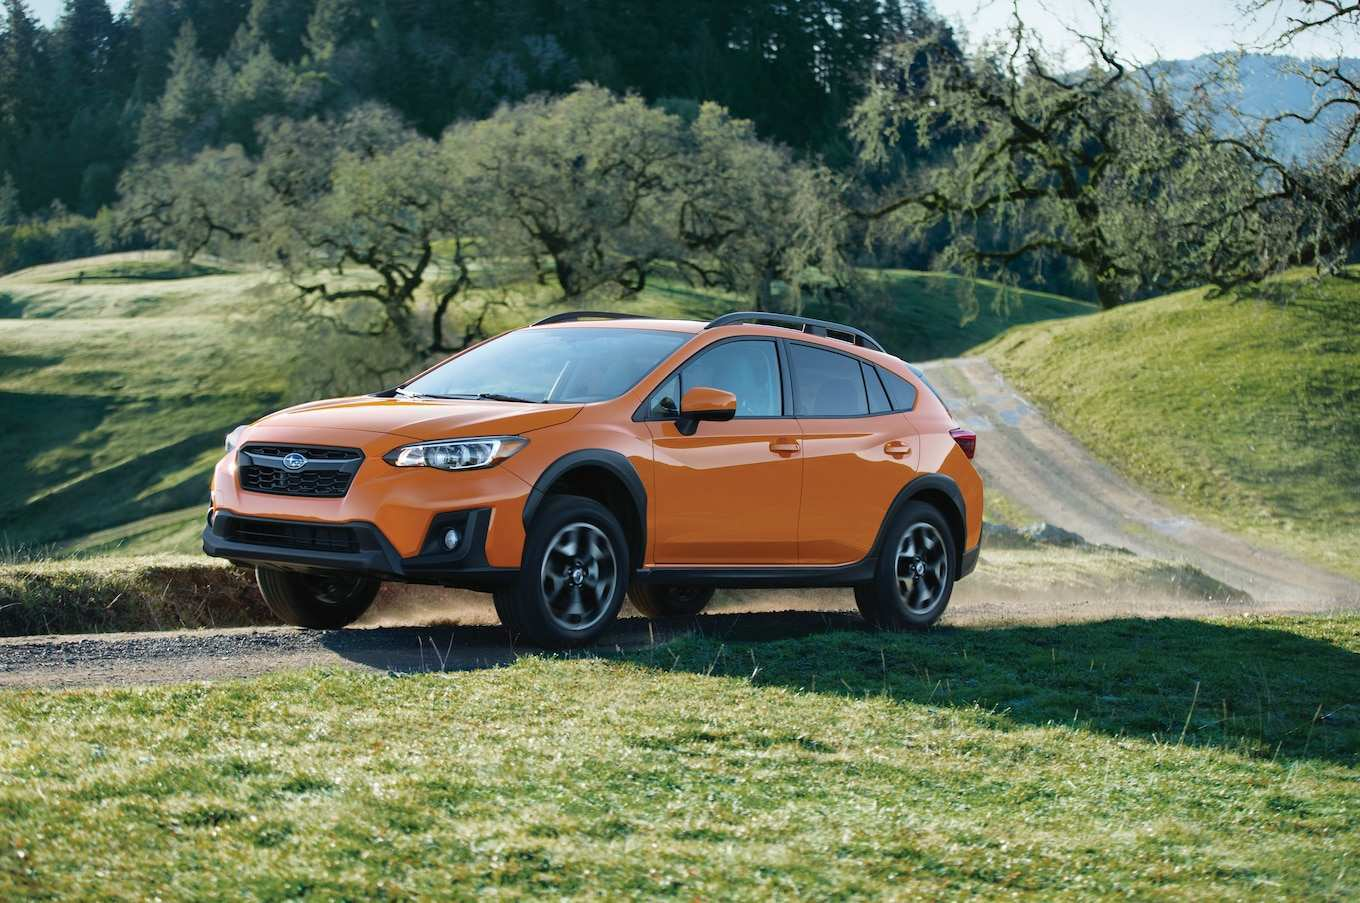 84 A Subaru Plans For 2019 Concept Redesign And Review Price